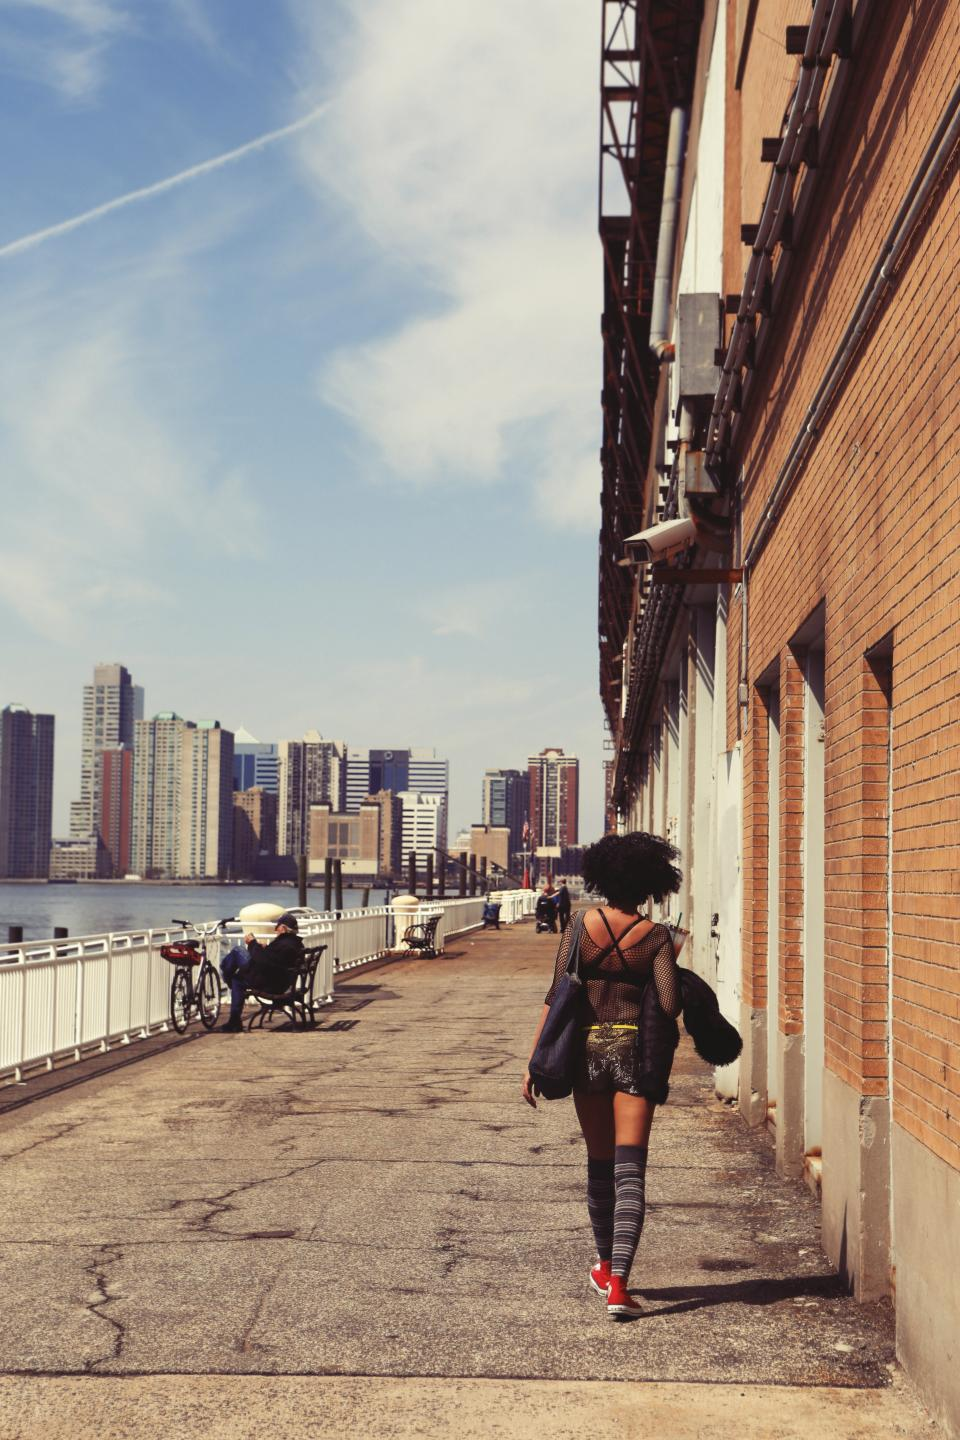 people, pedestrian, girl, woman, african american, fashion, socks, pedestrian, sidewalk, concrete, bench, railing, river, city, urban, buildings, architecture, sunny